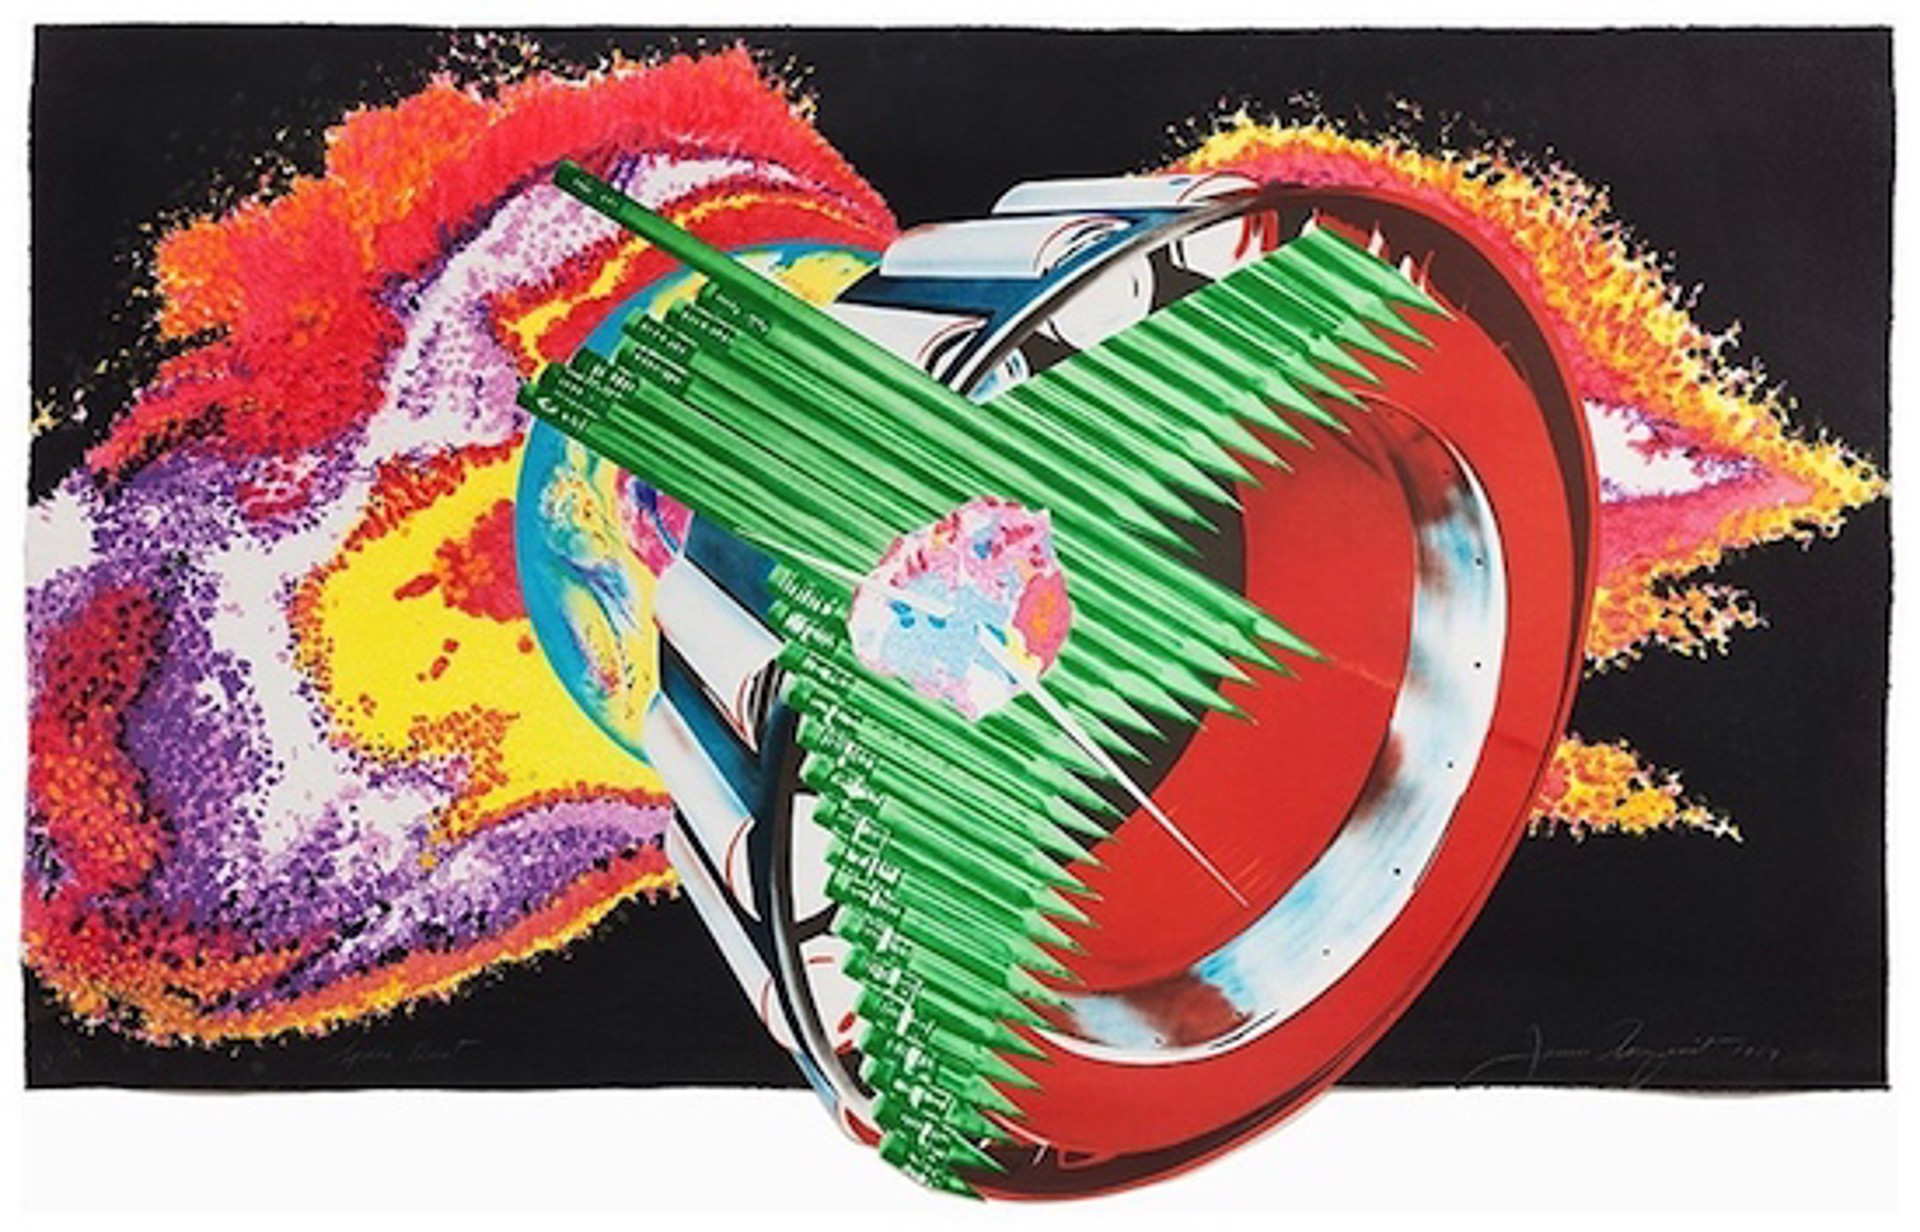 Space Dust by James Rosenquist